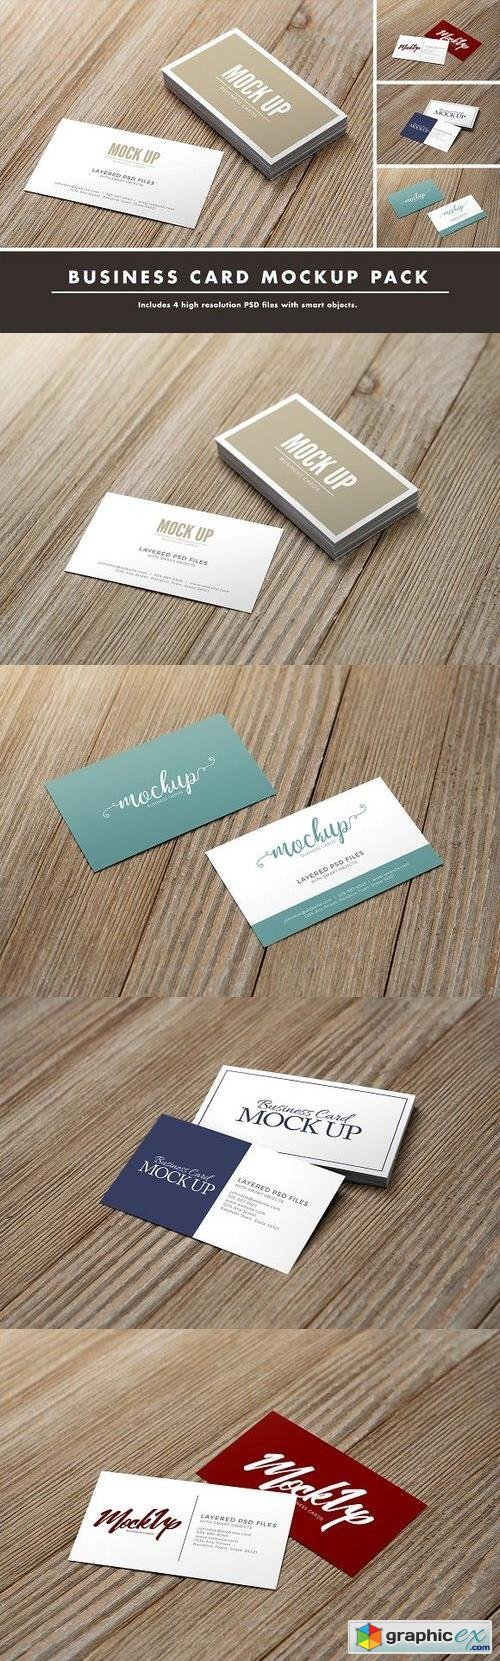 Business Card Mockup Pack on Wood